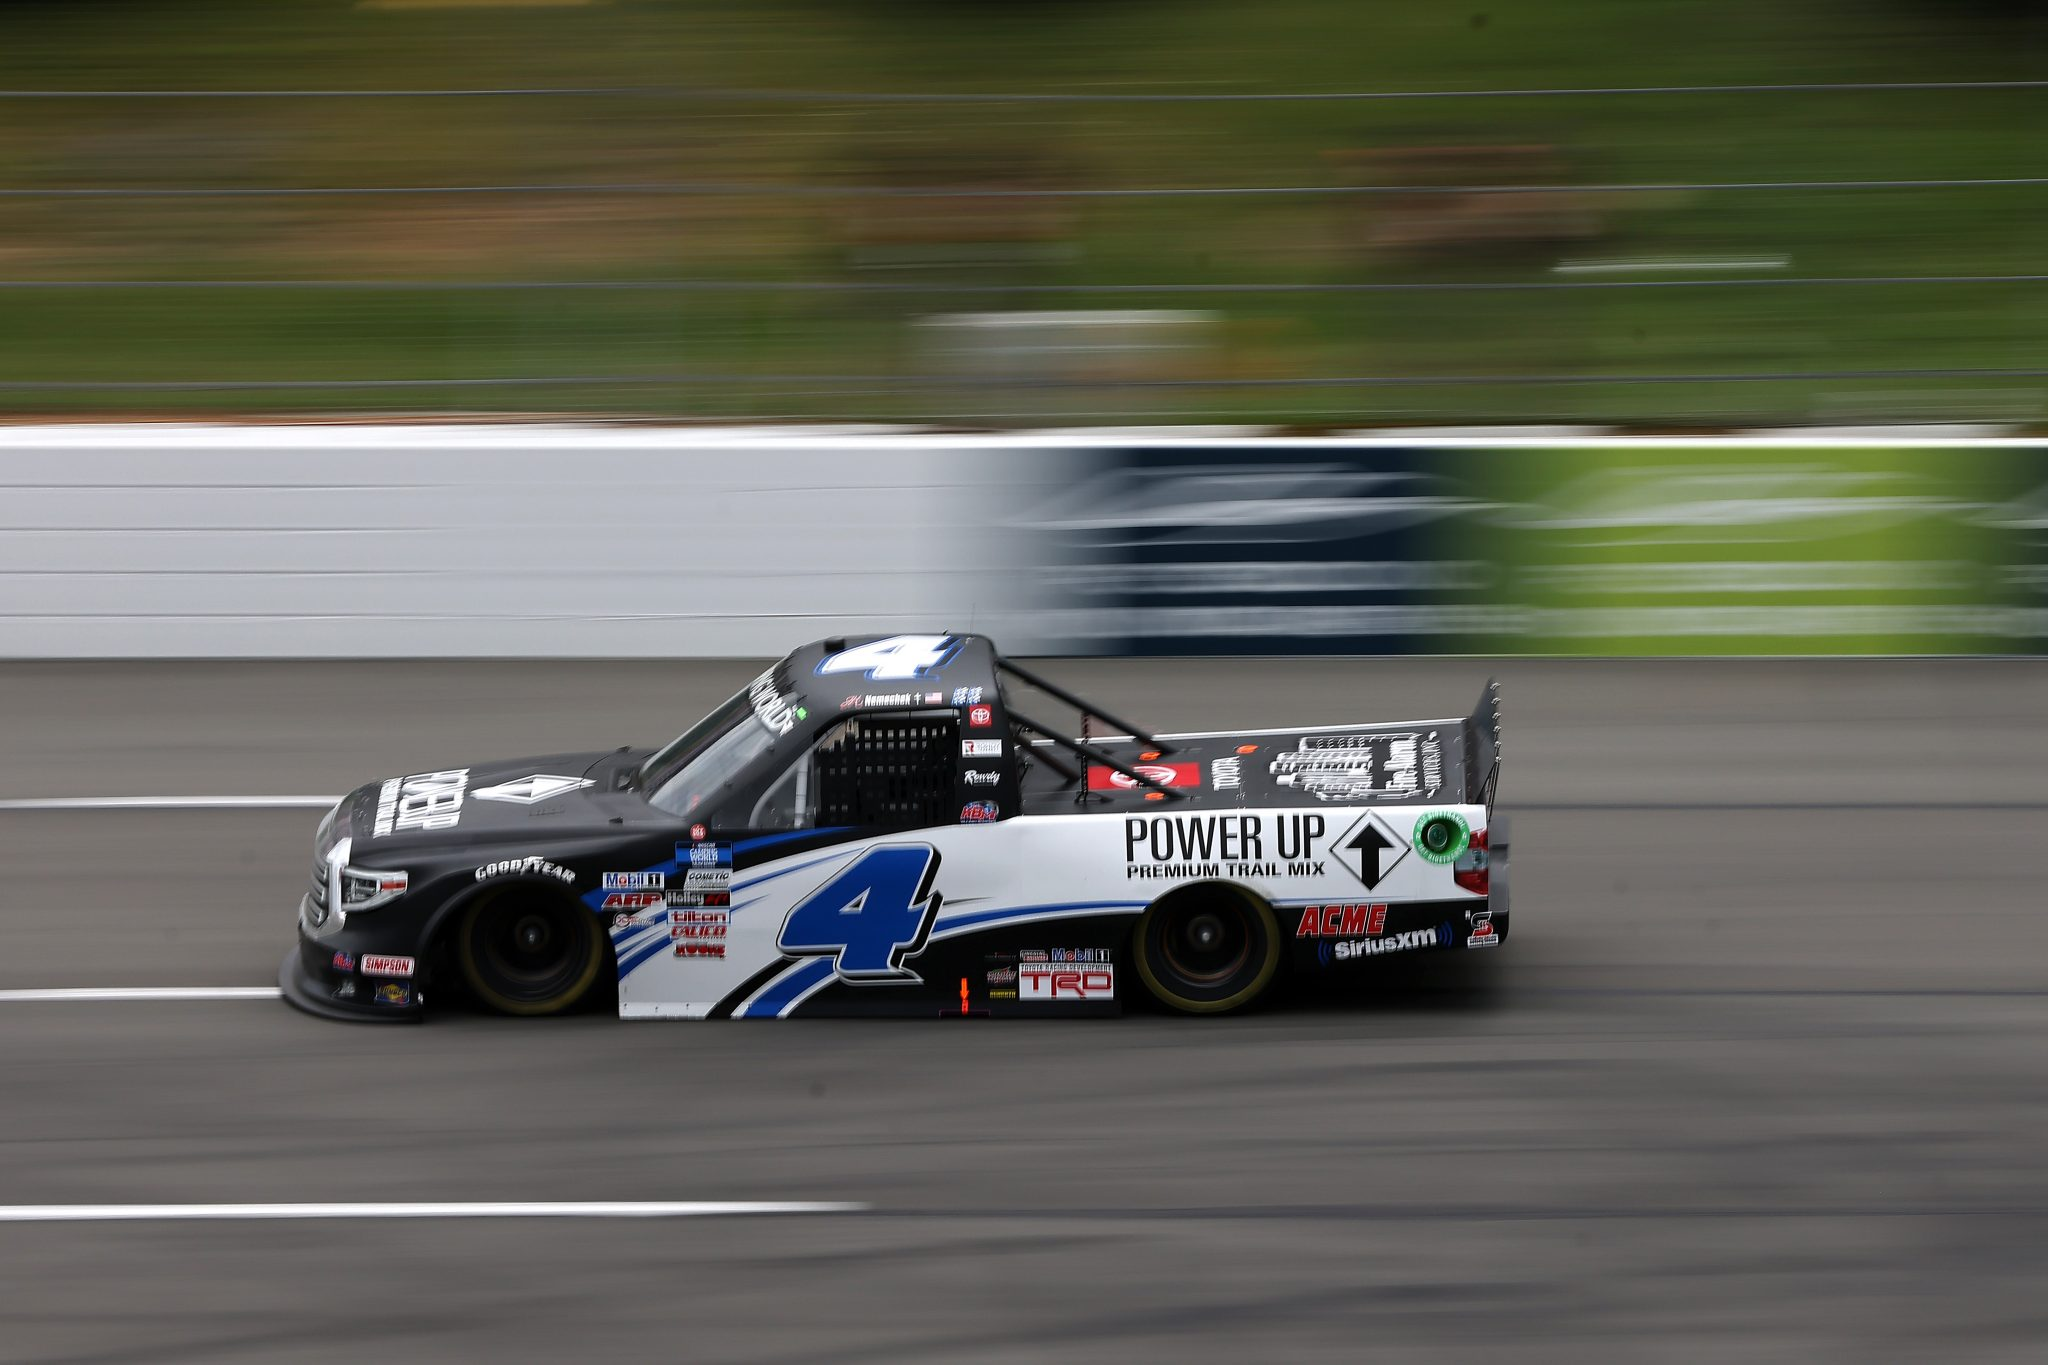 LONG POND, PENNSYLVANIA - JUNE 26: John Hunter Nemechek, driver of the #4 Power Up Premium Trail Mix Toyota, drives during the NASCAR Camping World Truck Series CRC Brakleen 150 at Pocono Raceway on June 26, 2021 in Long Pond, Pennsylvania. (Photo by James Gilbert/Getty Images)   Getty Images